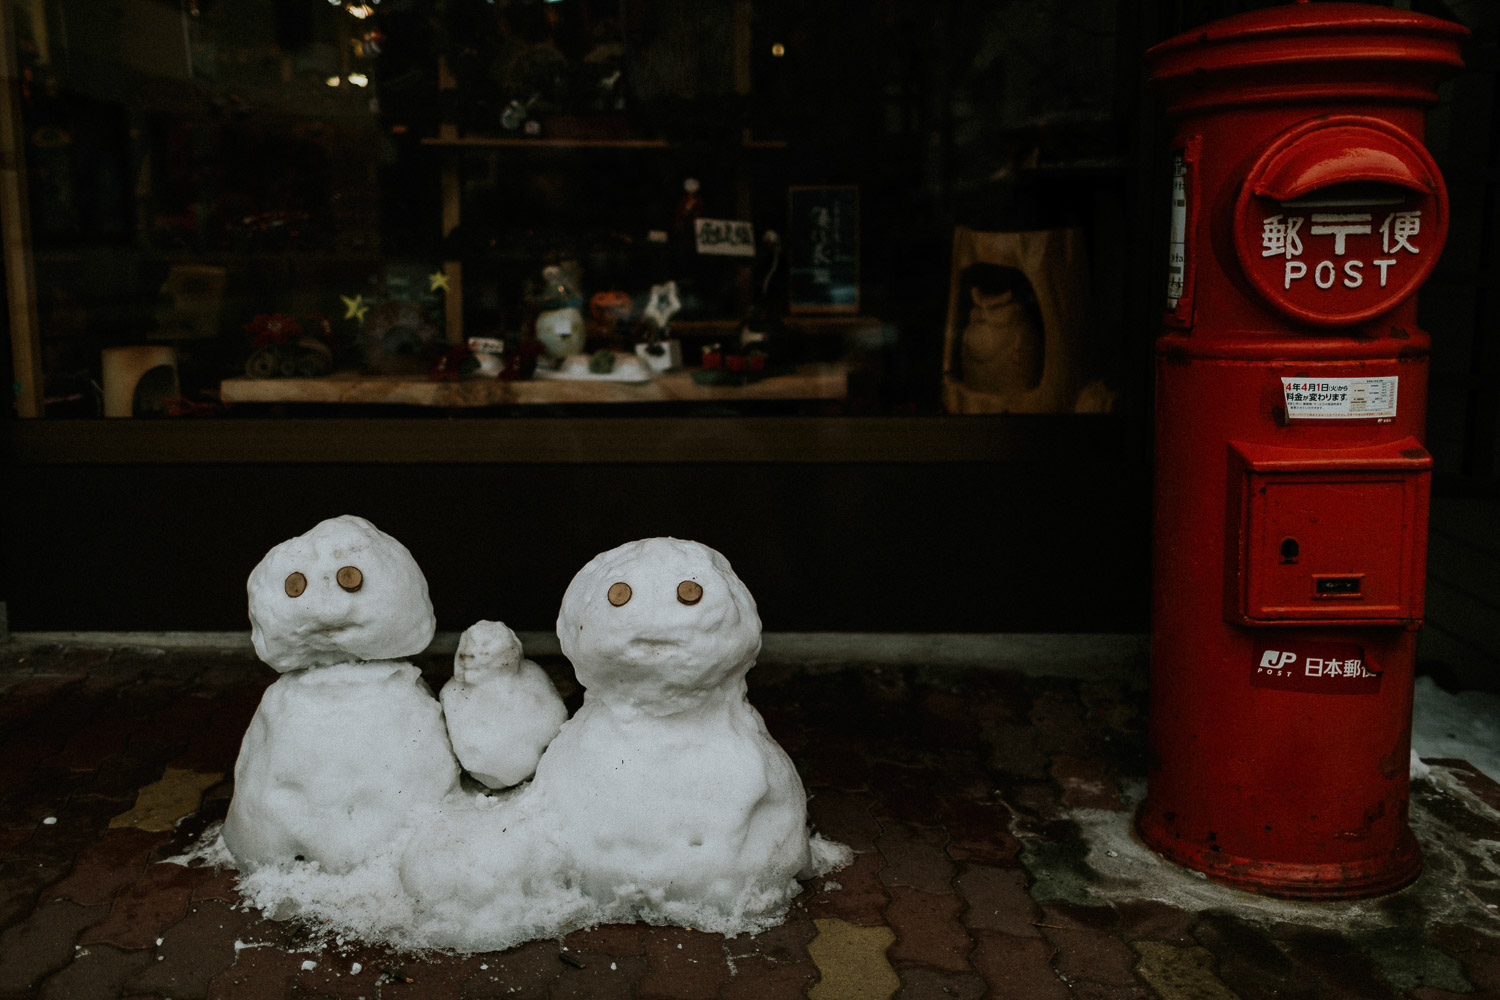 Image of red postbox and two snowmen